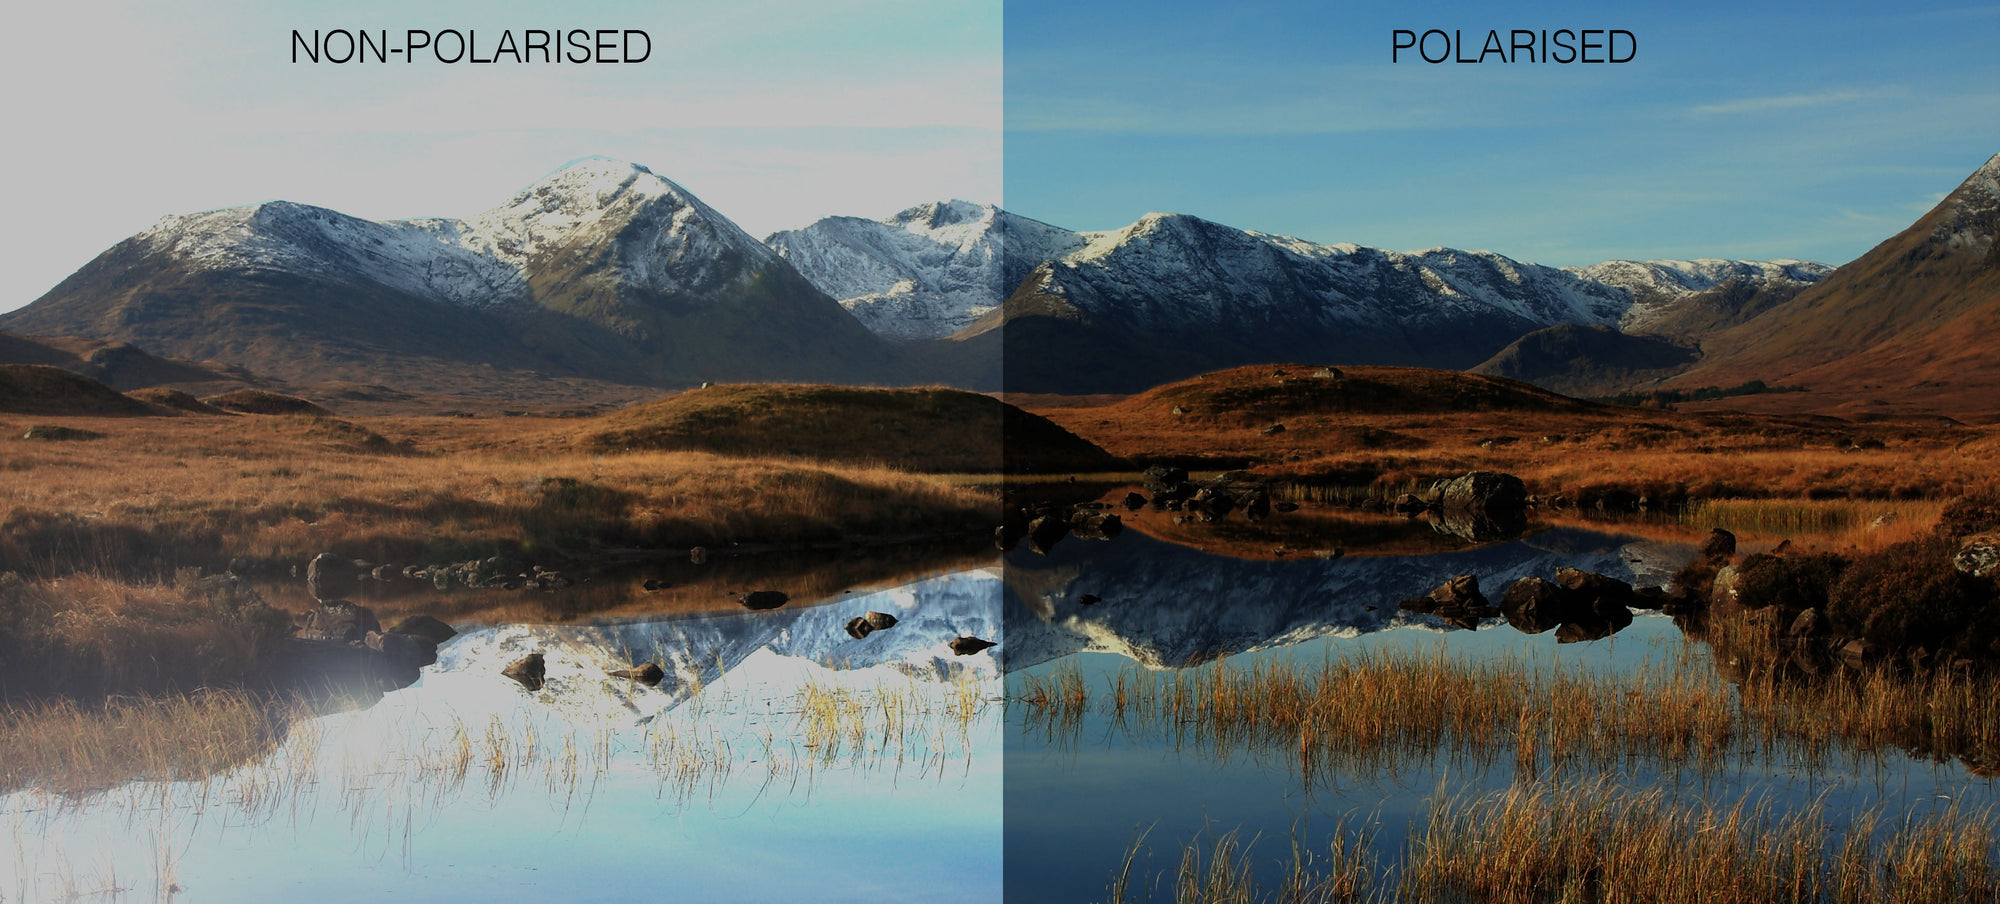 landscape example of polarised vs non polarised